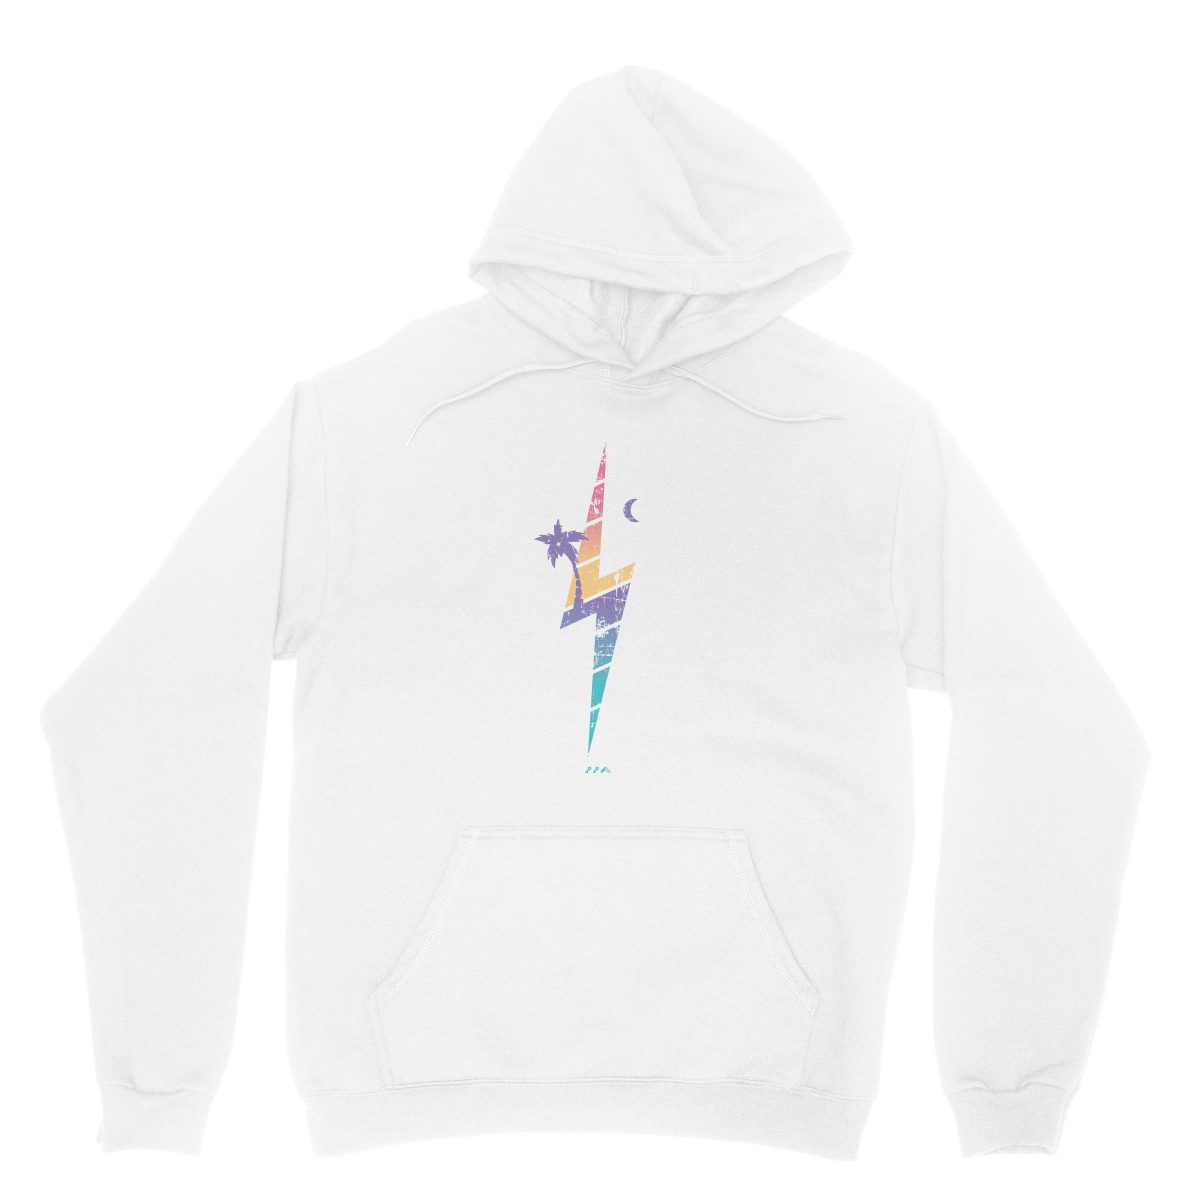 TROPIC THUNDER music festival soft beach hoodies in white at kikicutt.com